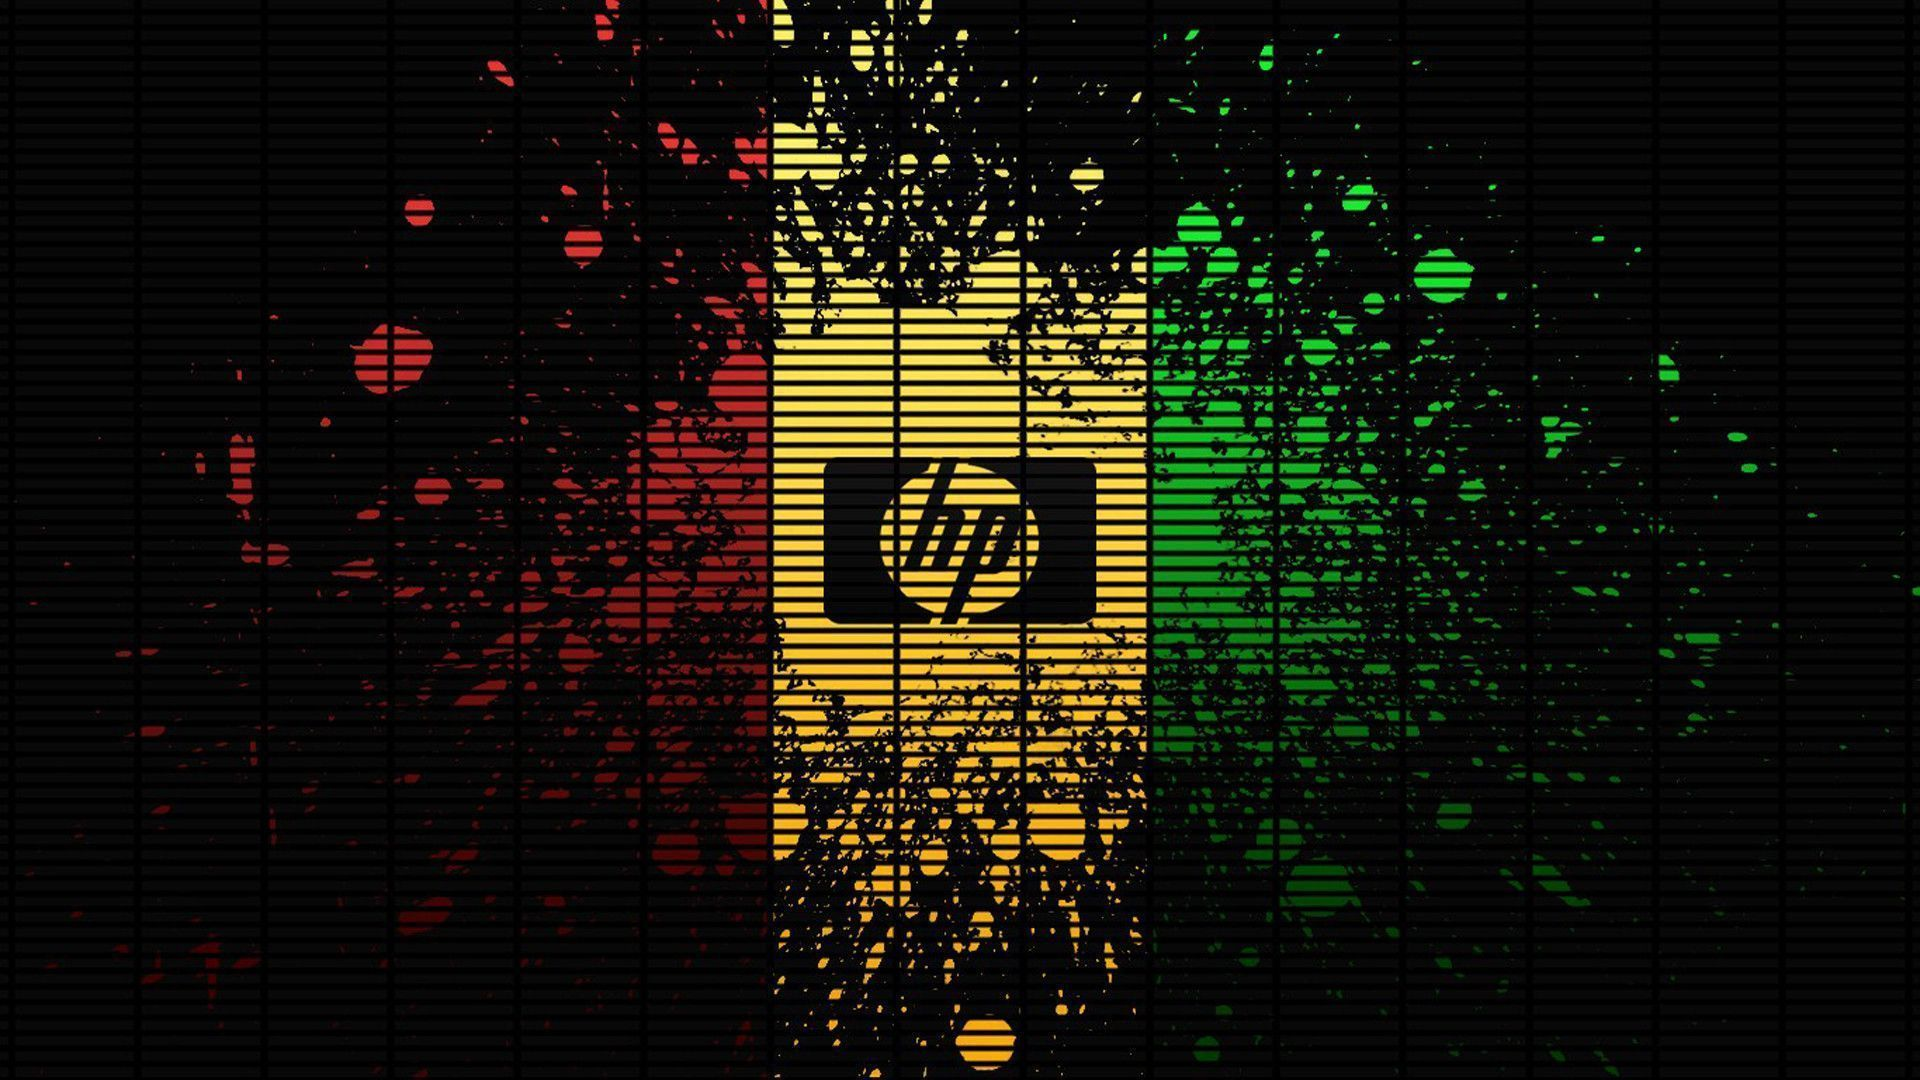 hp laptop wallpapers